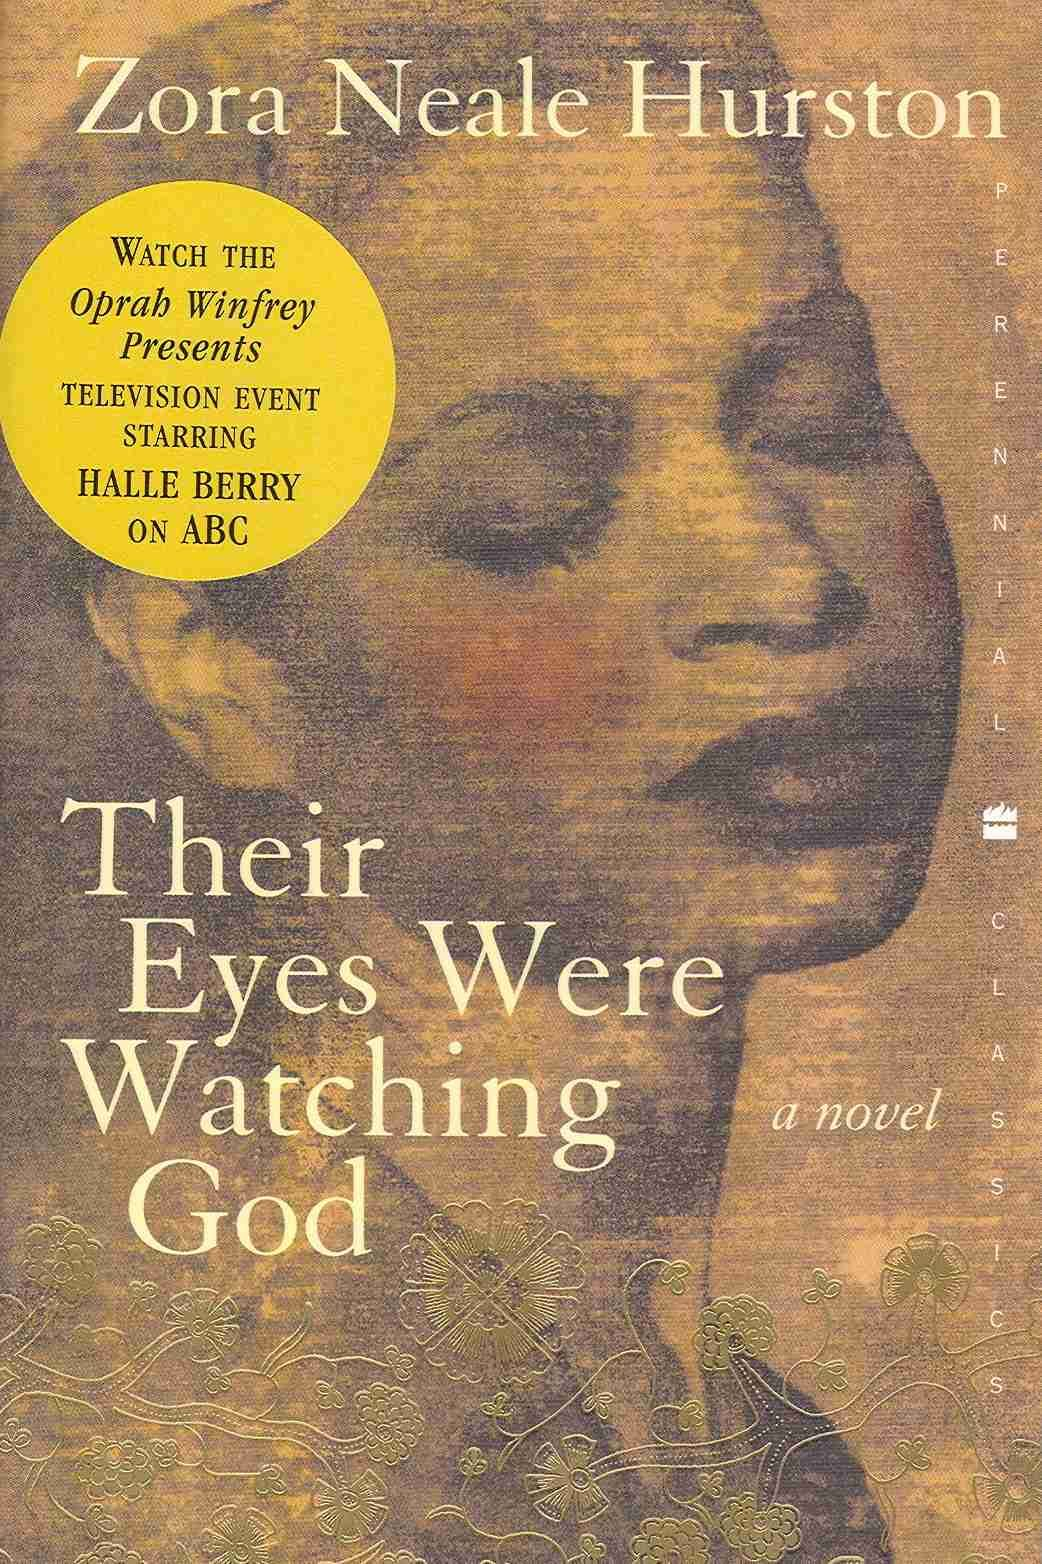 best images about their eyes were watching god 17 best images about their eyes were watching god happy tea wooden gates and structural racism